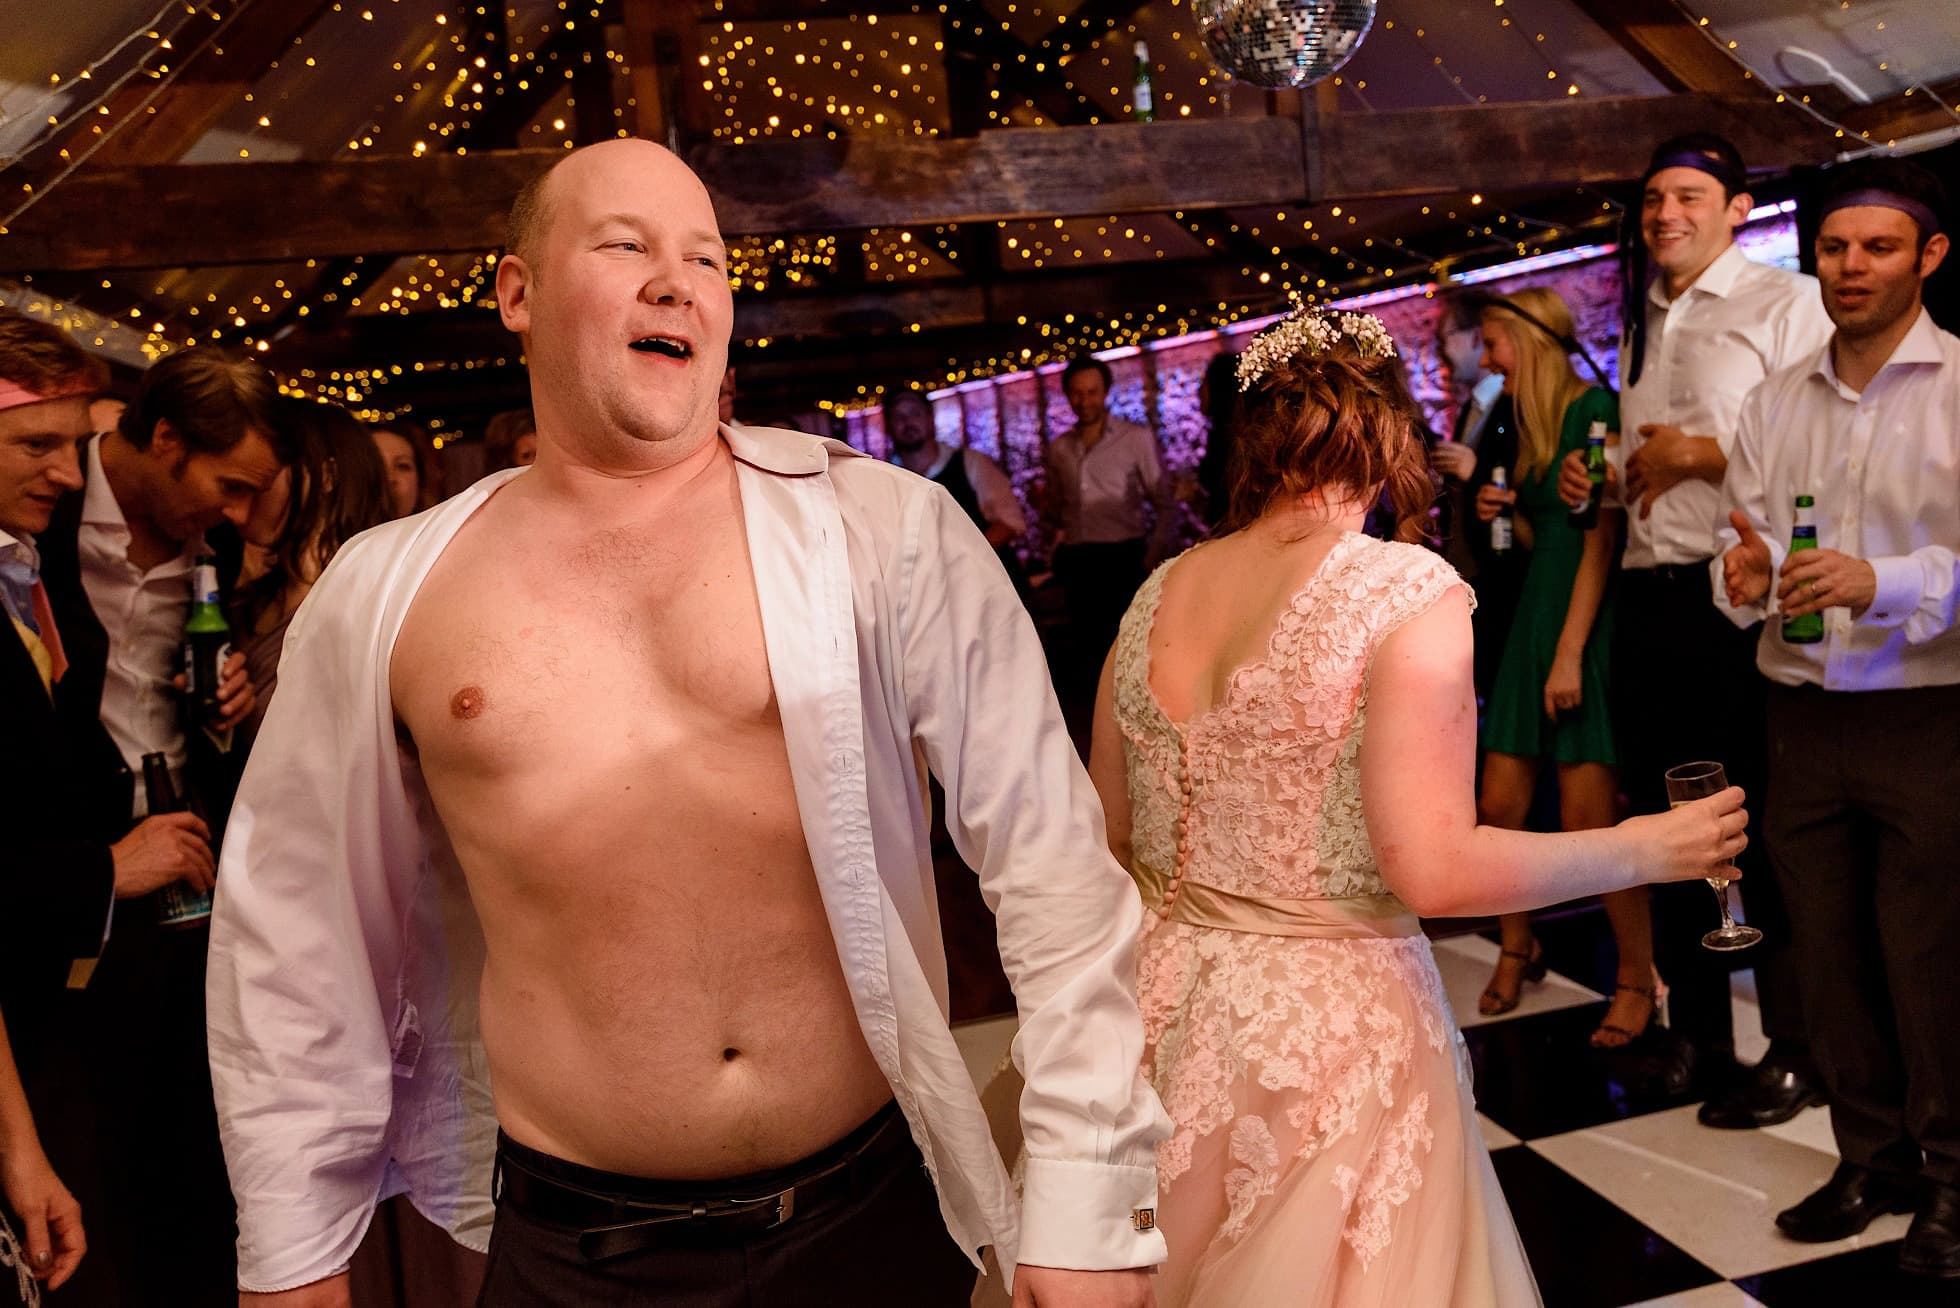 Groom gets topless!